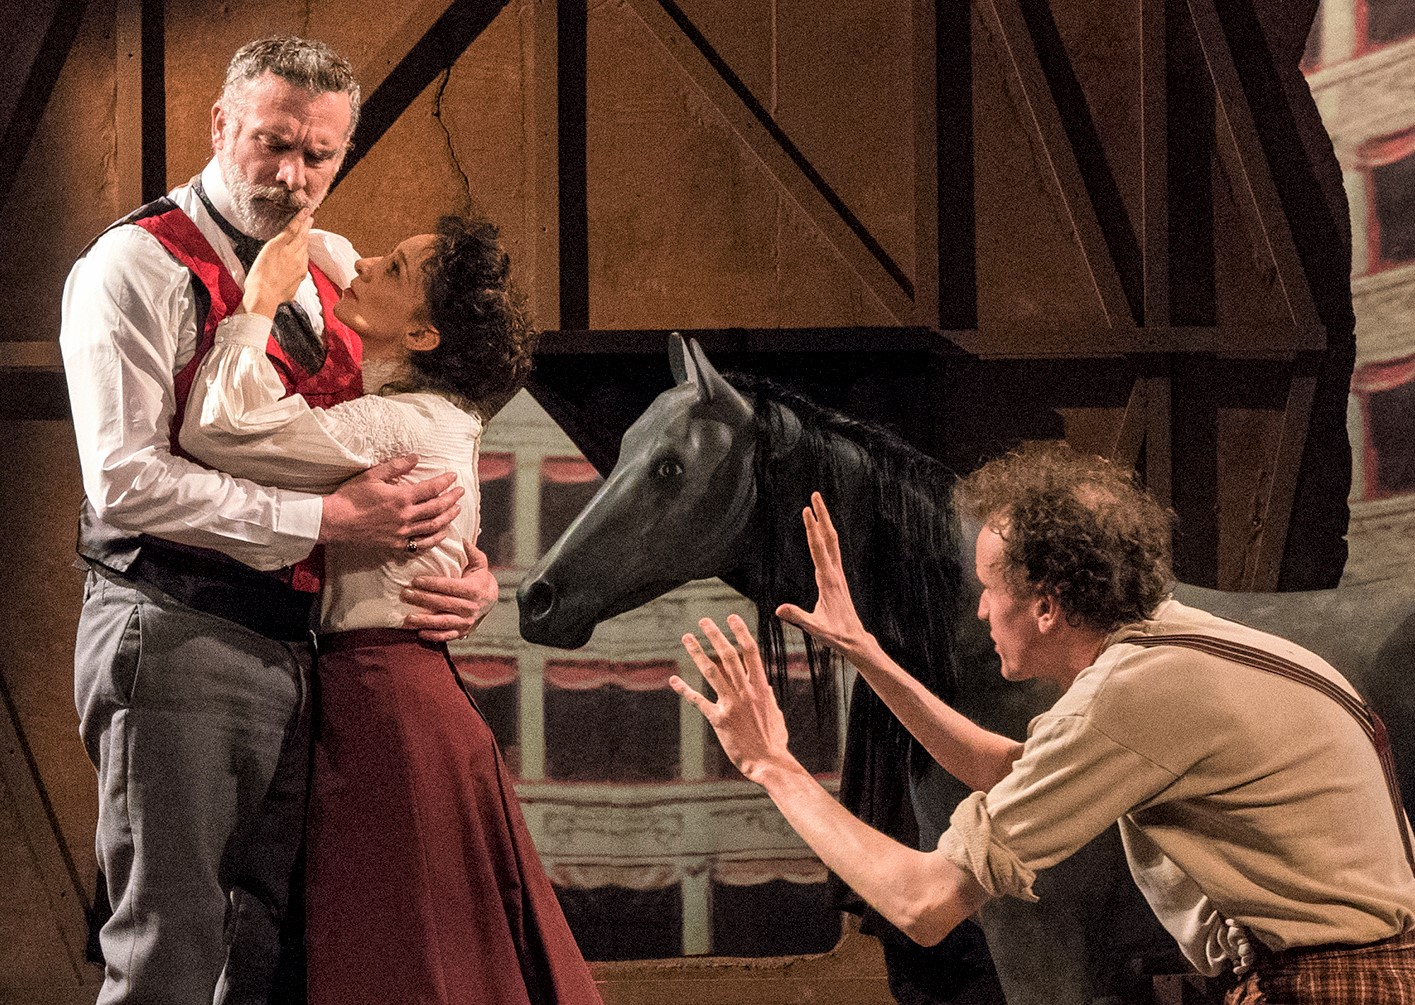 Spina and Malone with Aidan Redmond (left) as Domenica, the male lead of Torrisi's play. Photographs by Richard Termine.